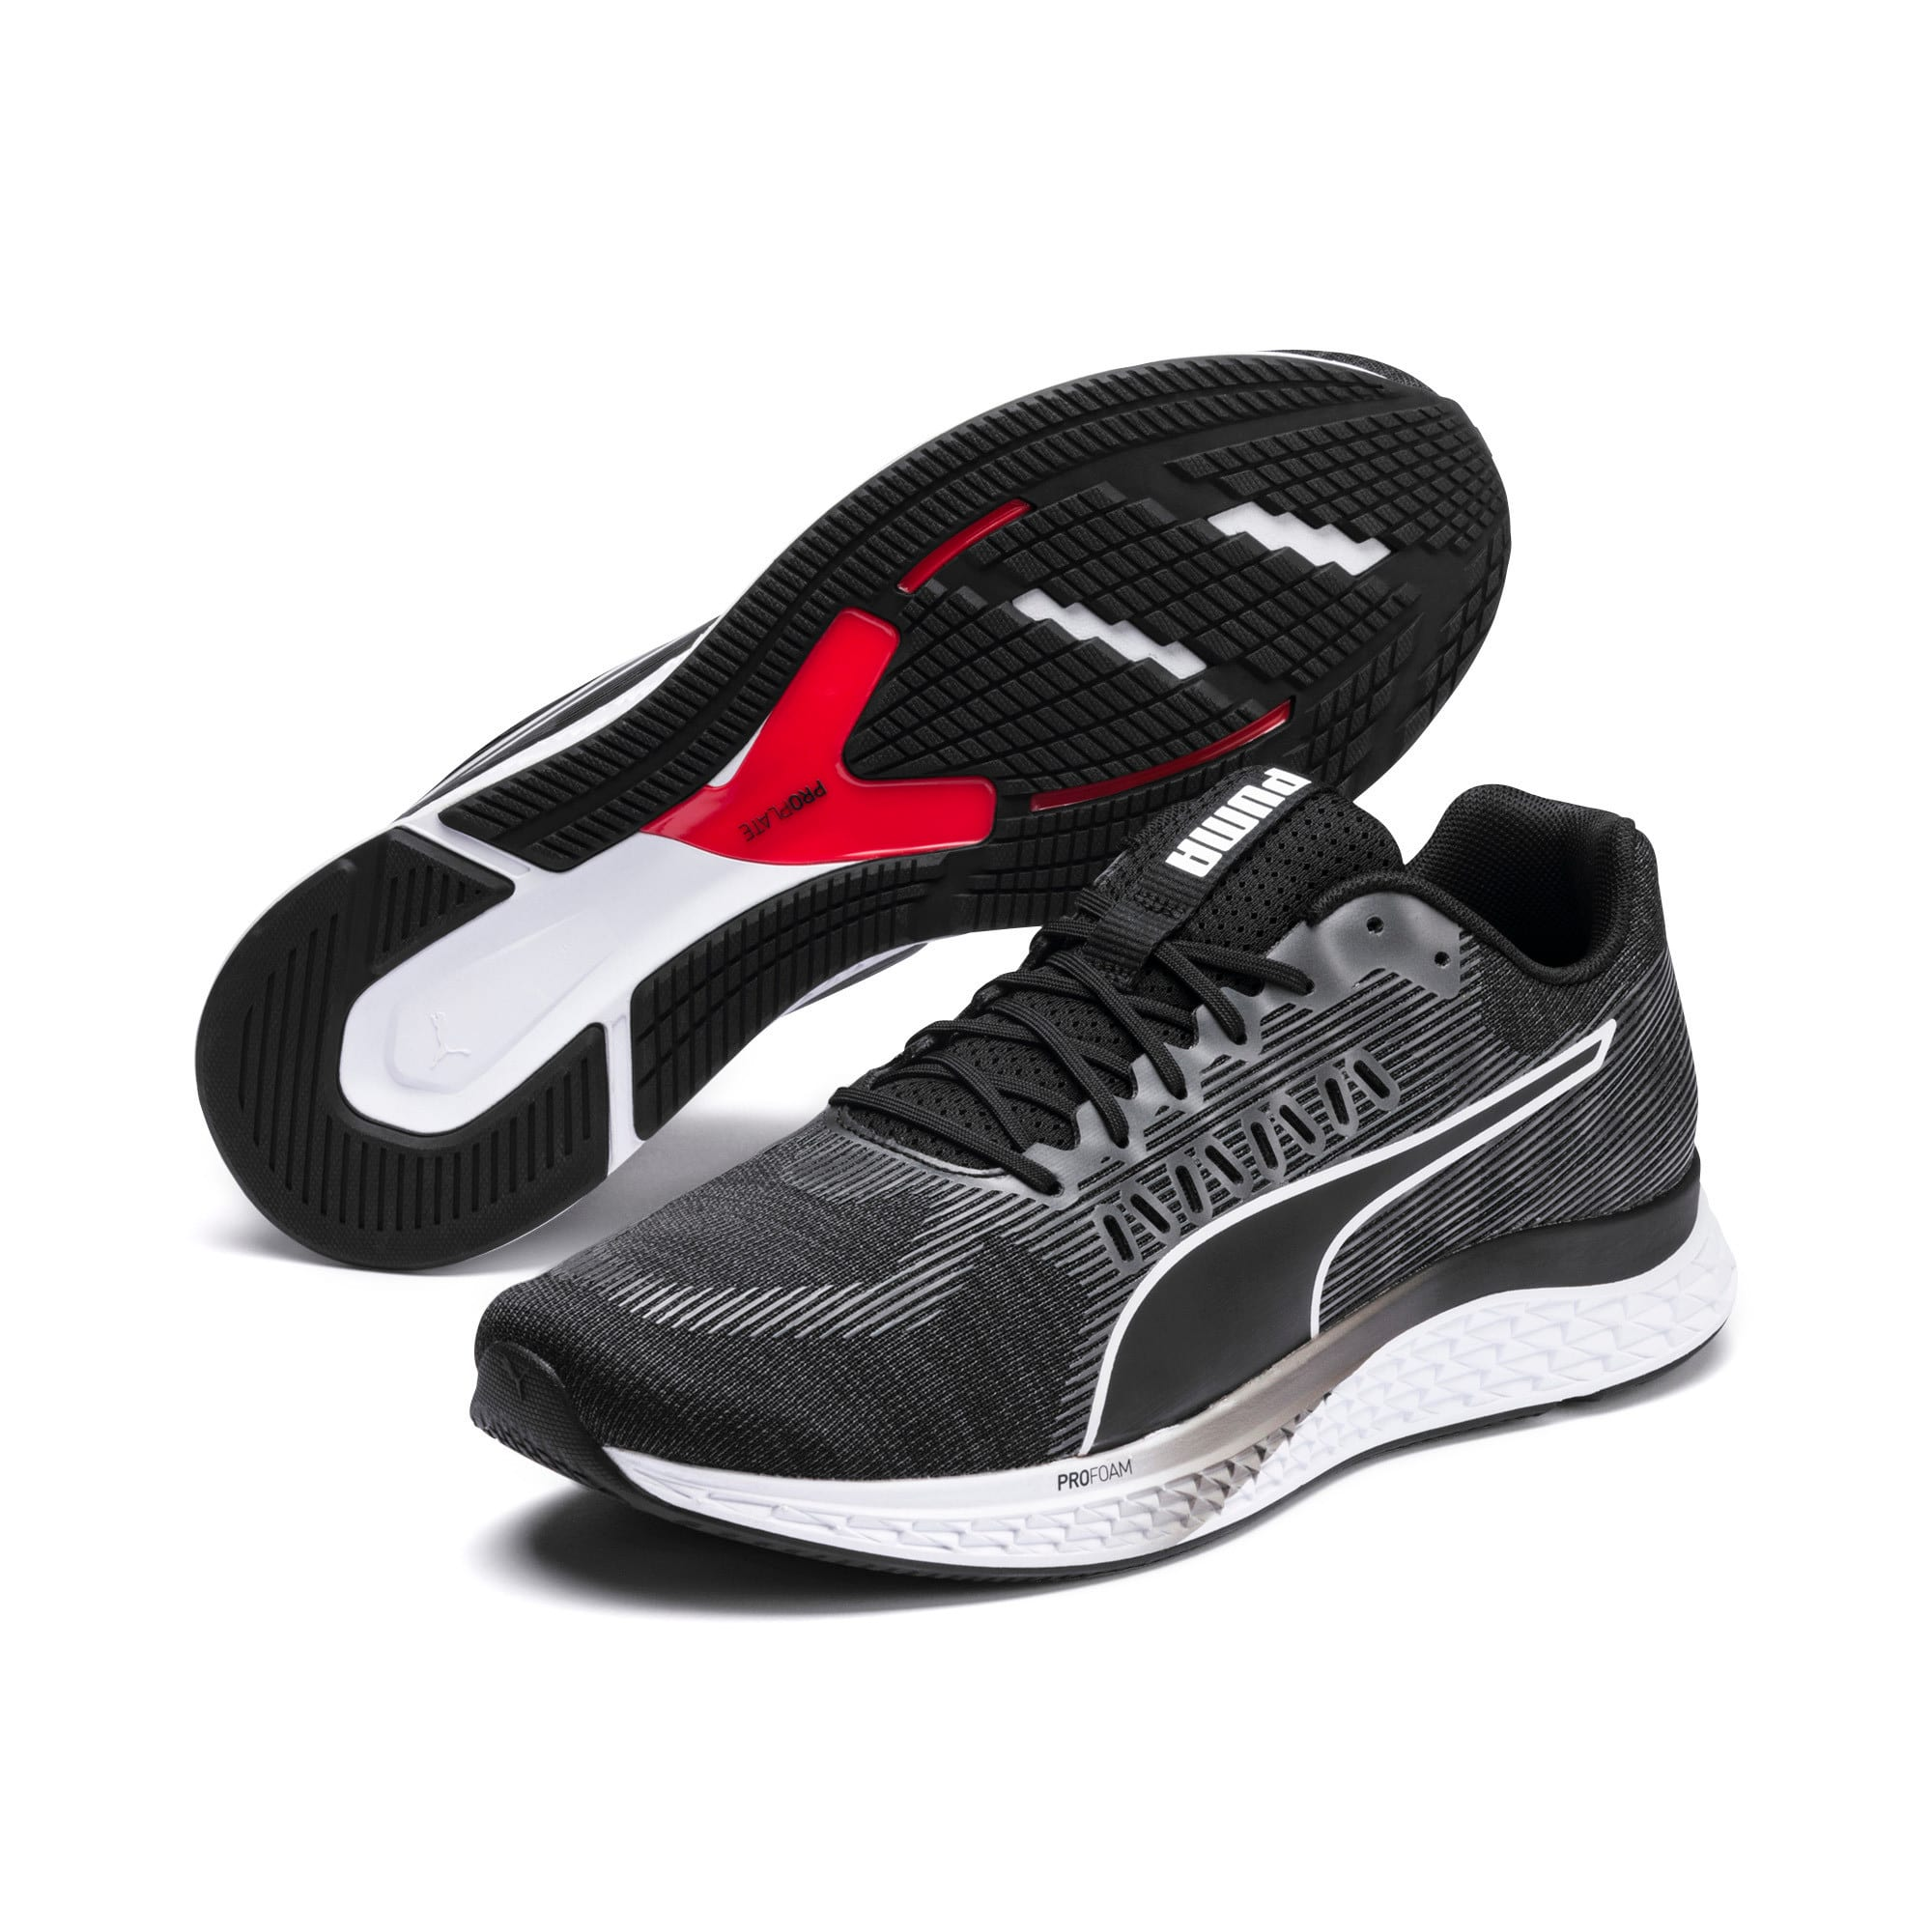 Imagen en miniatura 2 de Zapatillas de running SPEED SUTAMINA, Puma Black-Puma White, mediana